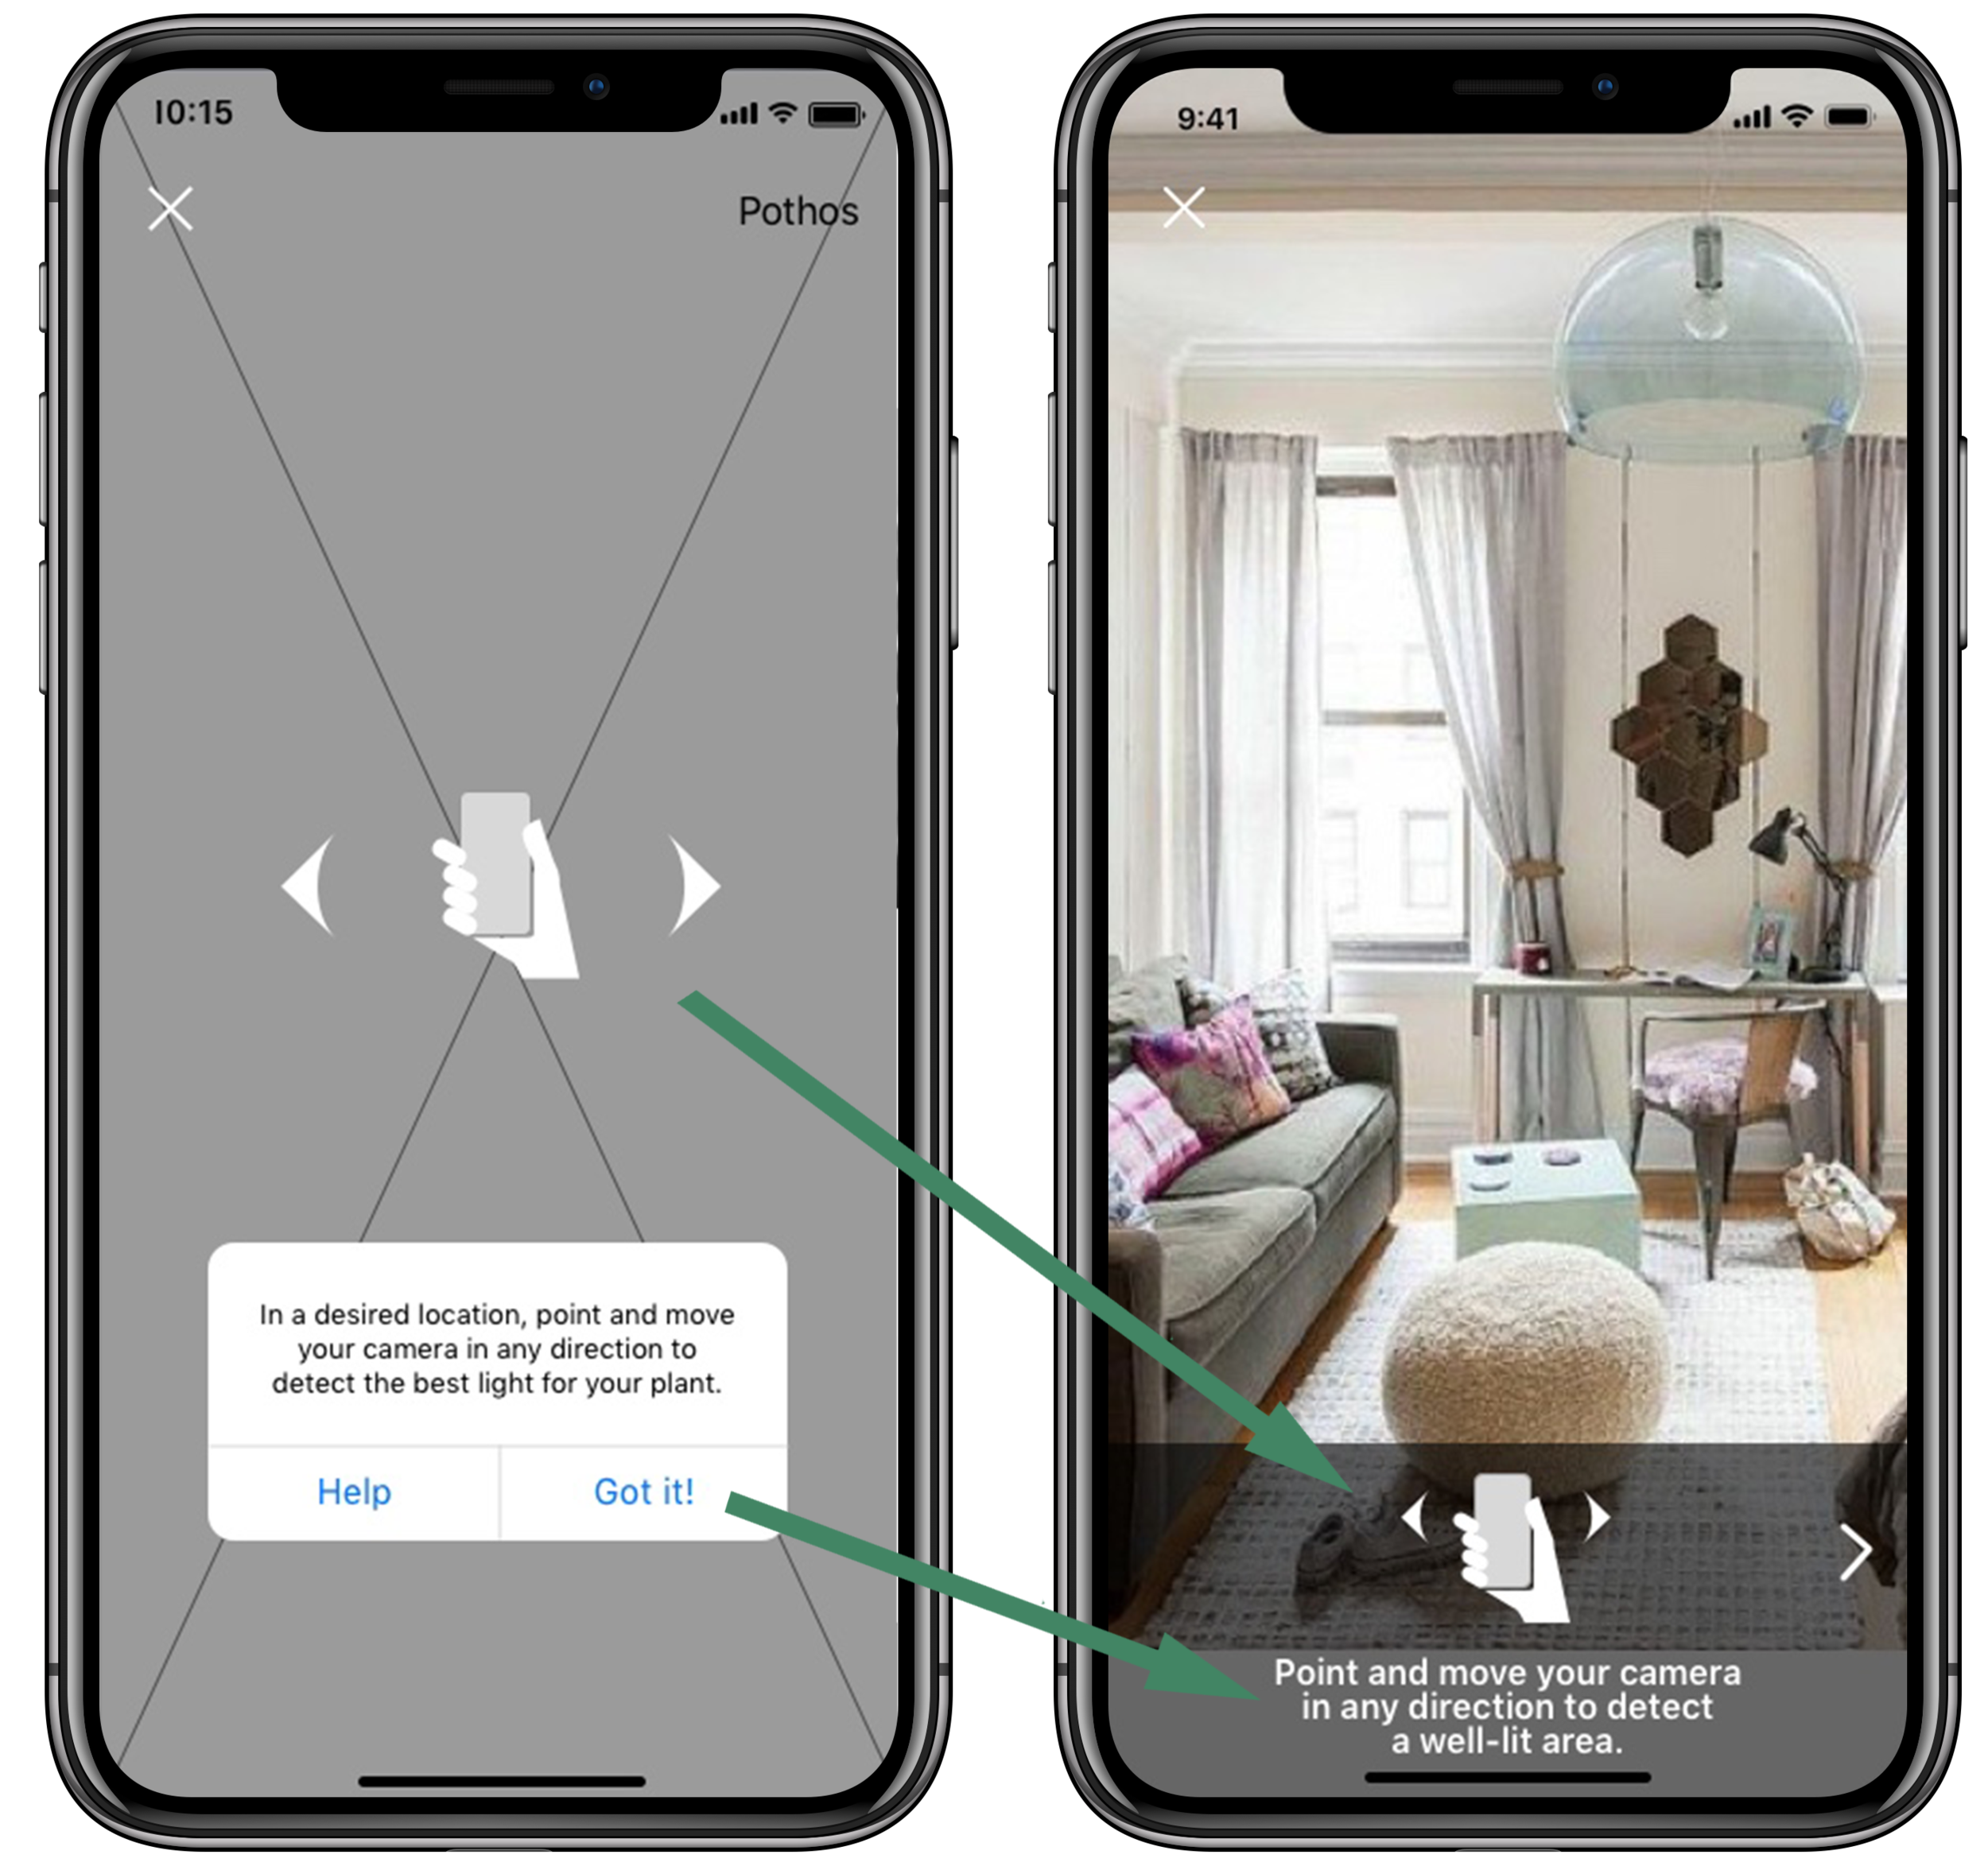 3) Copy for AR instructions was too long and the visual appeal was dull, so users didn't take time to read them in testing. We edited the copy and redesigned the interface.